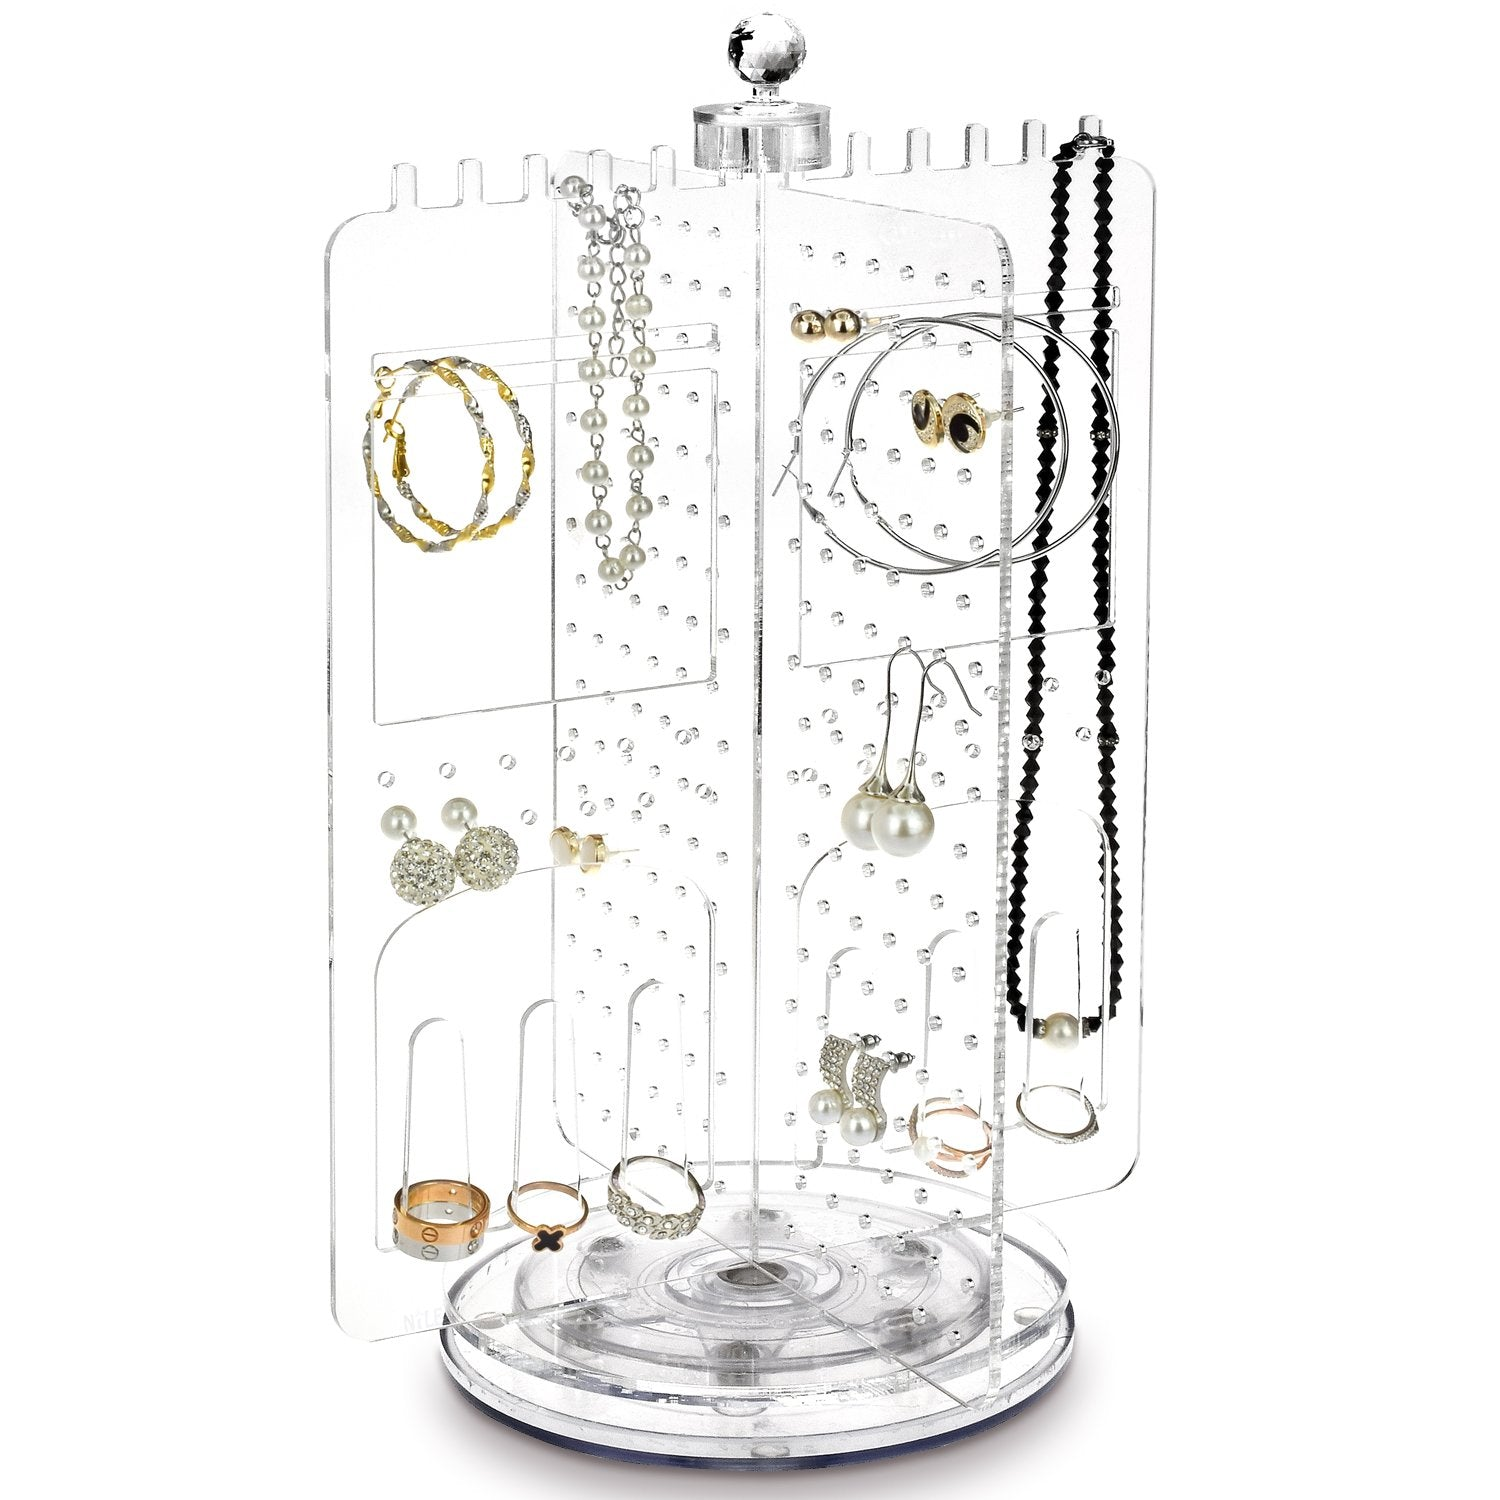 Jwy6065 Acrylic Rotating Jewelry Stand Earring Holder Accessories Organizer 17 05 Nilecorp Com